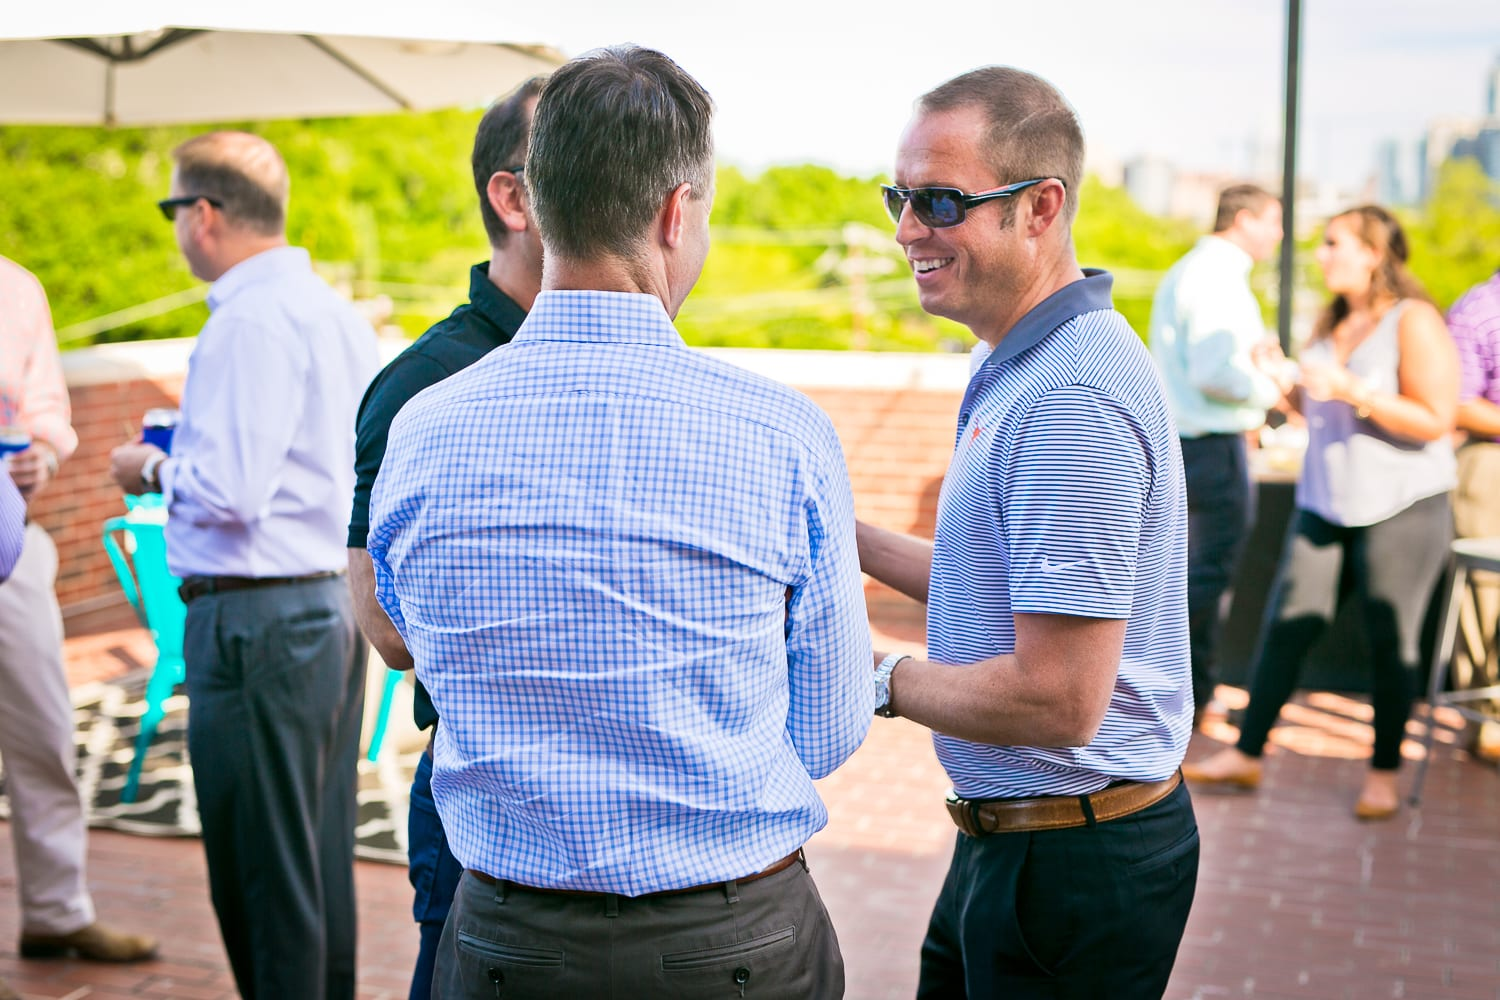 Chad Barrett at a client appreciation event.